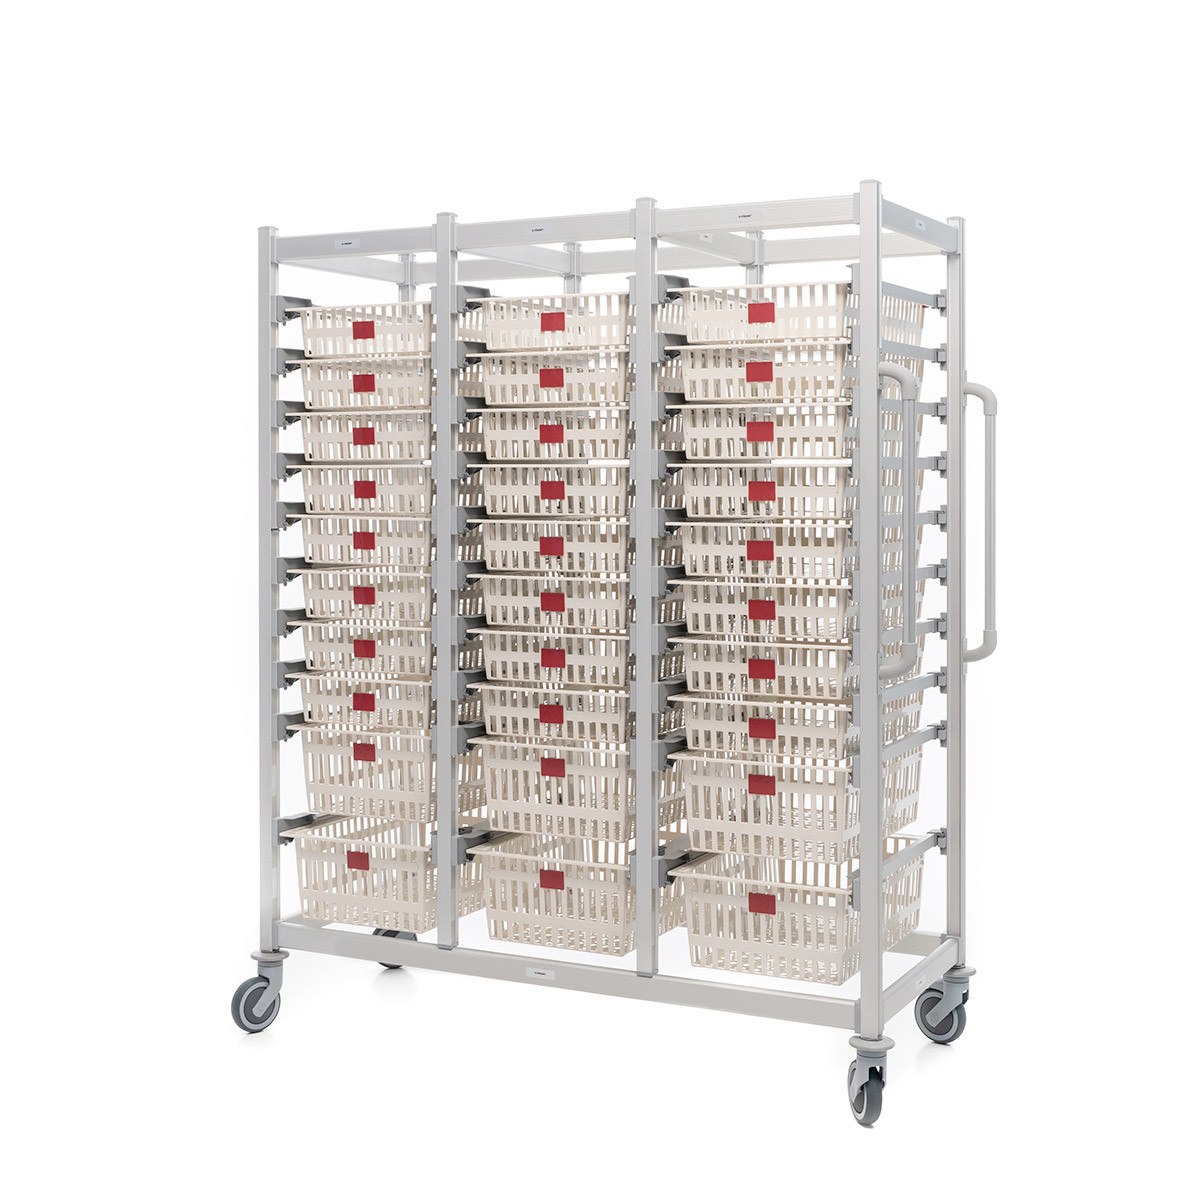 Open transport medical carts